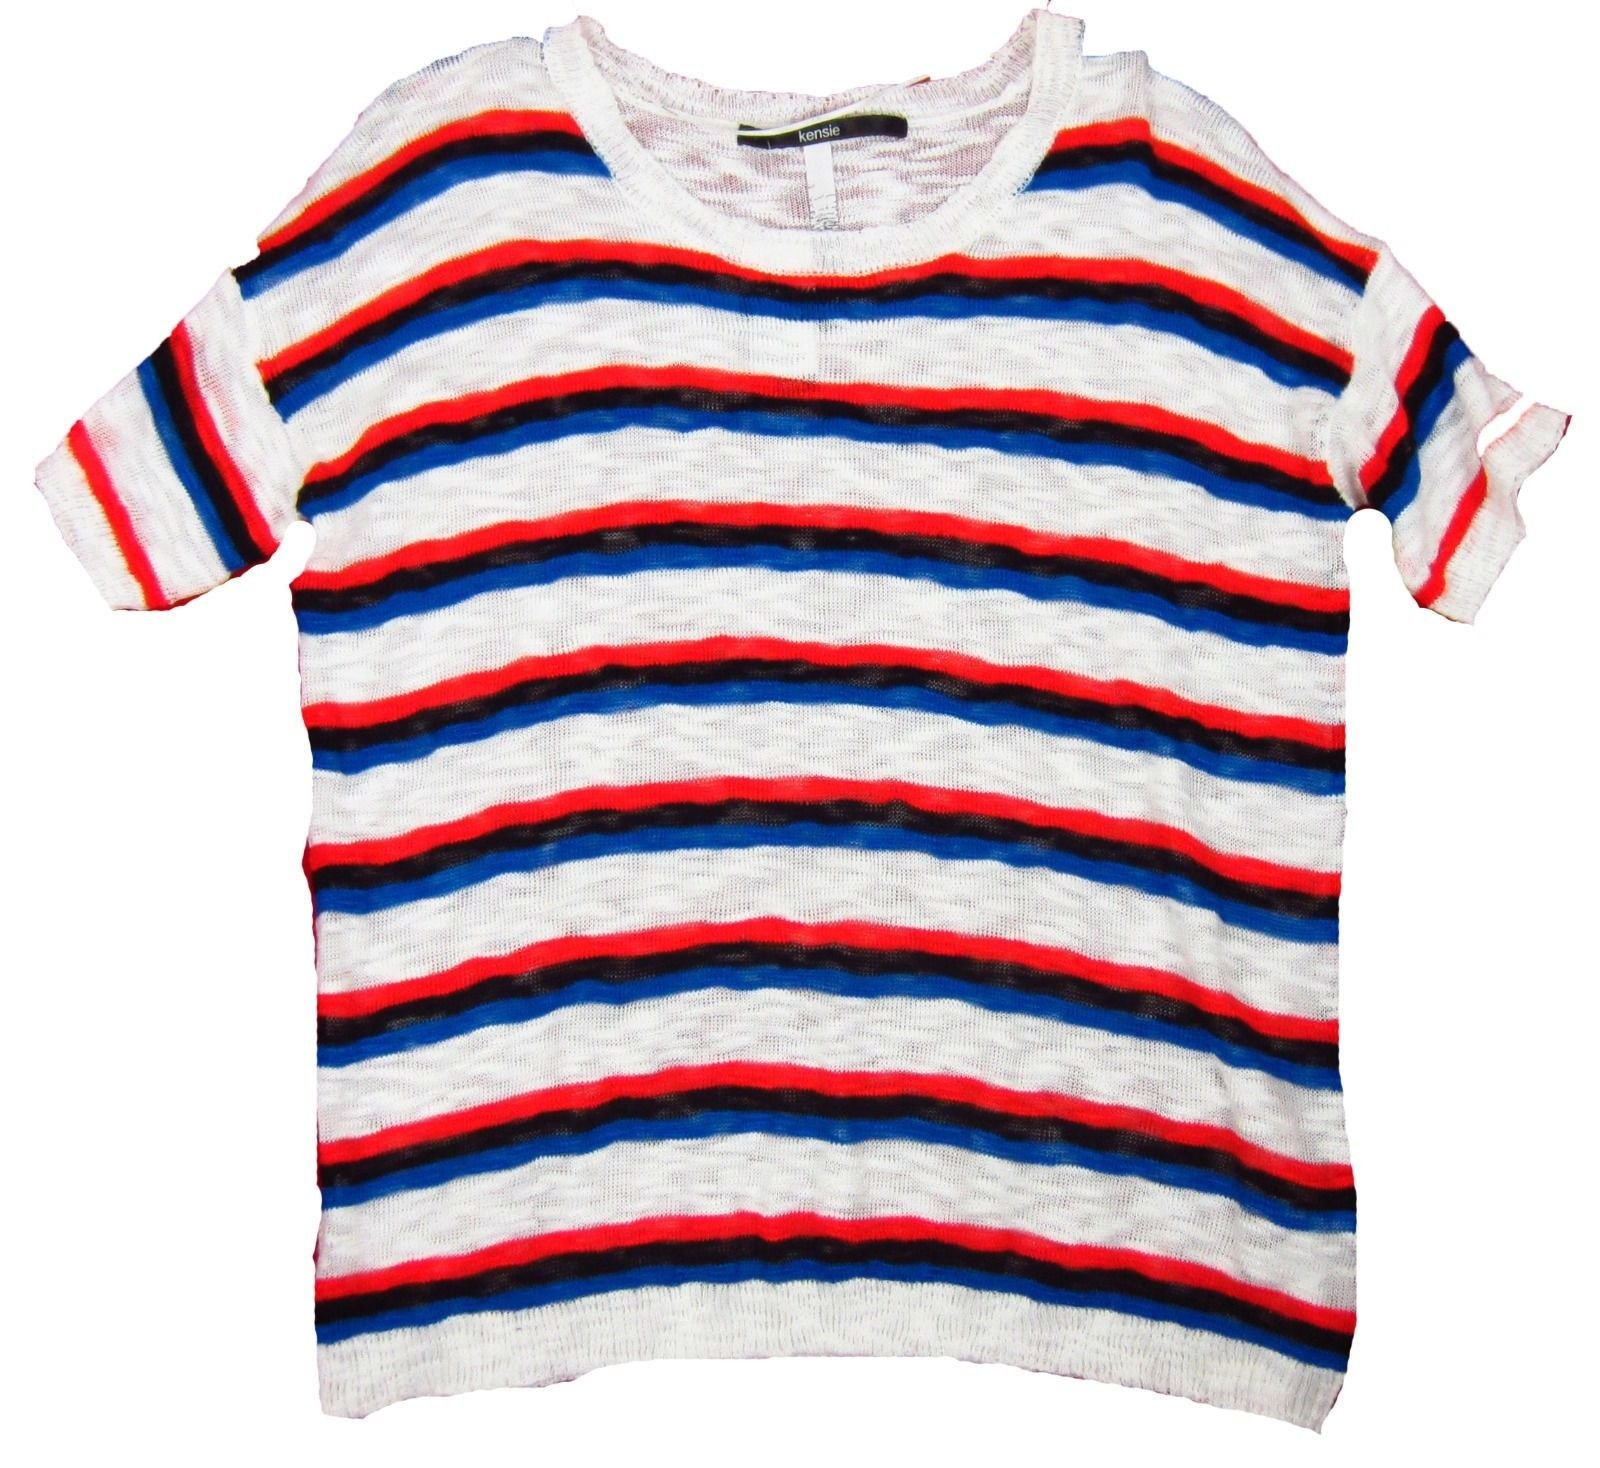 08056a6dee Womens Kensie Short Sleeve Shirt Red White Blue Striped Top Size M ...